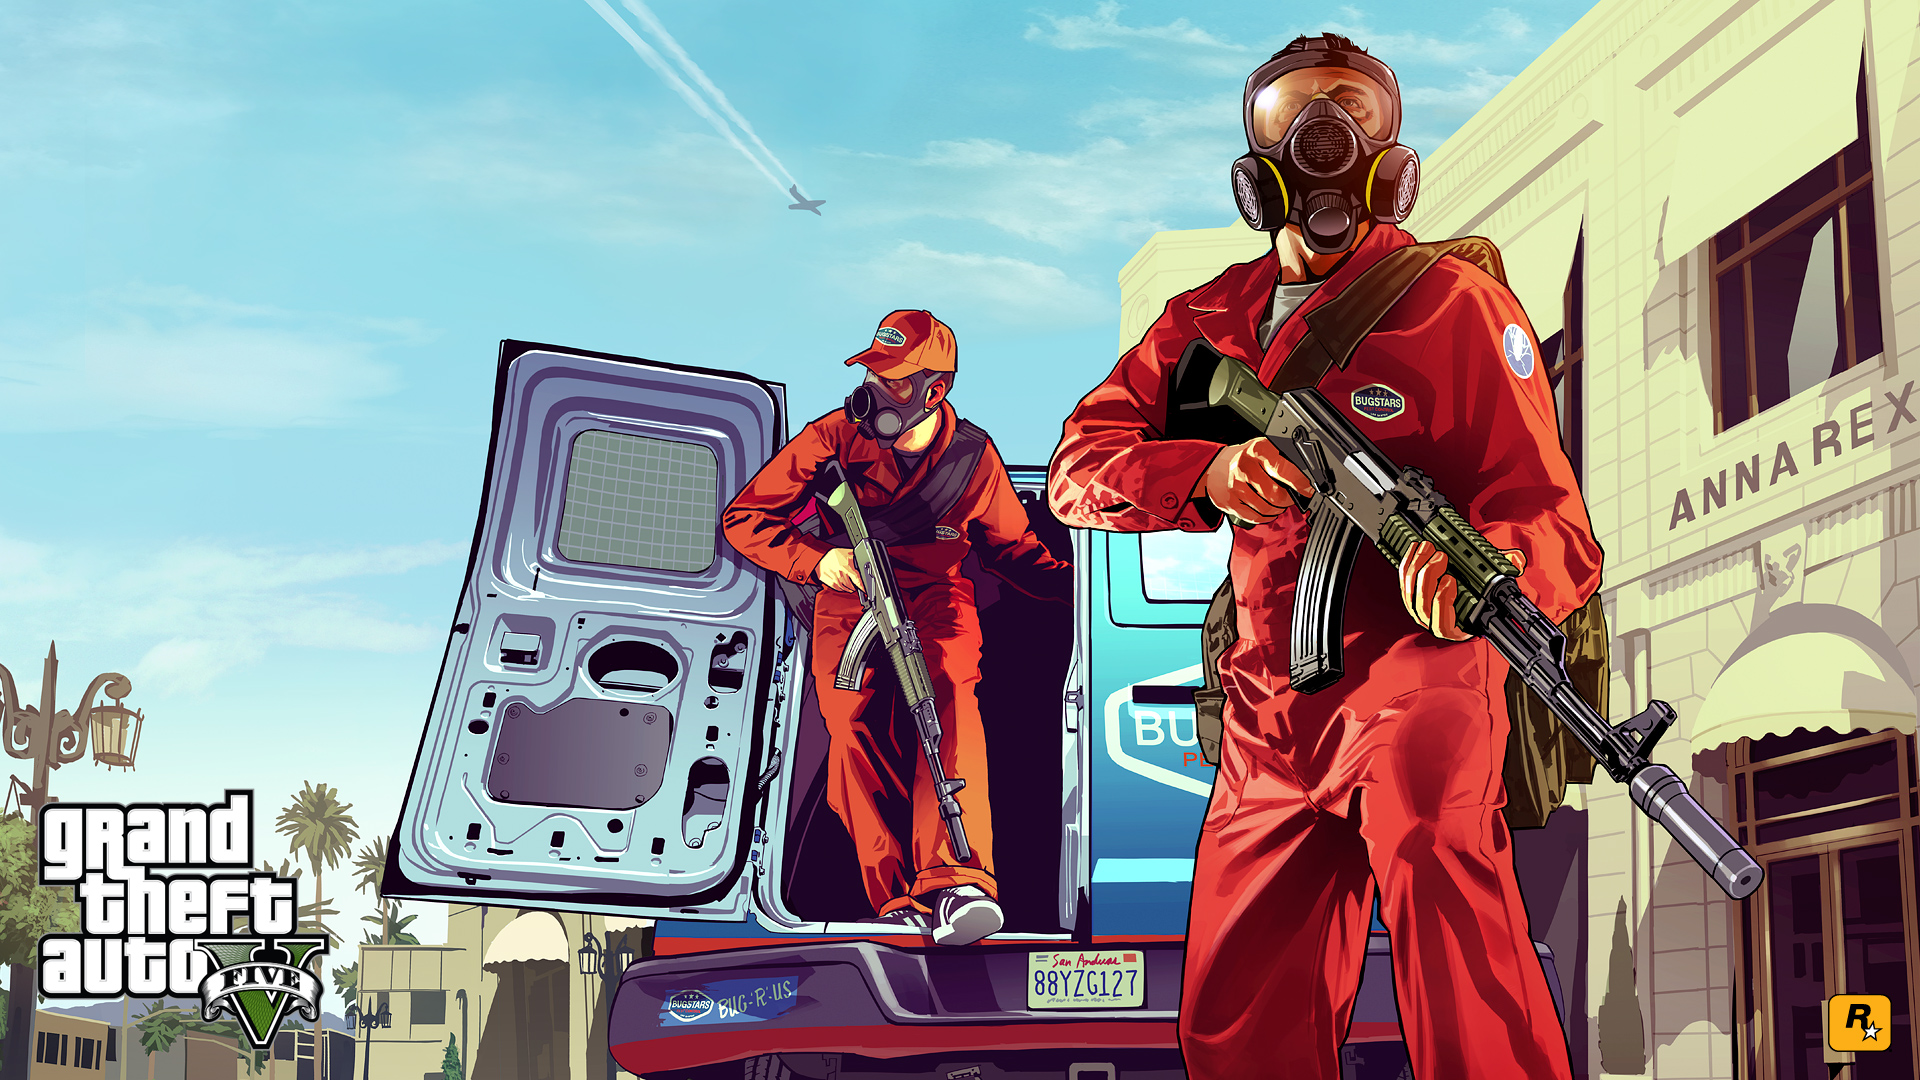 Wallpapers : GTA V En Artwork